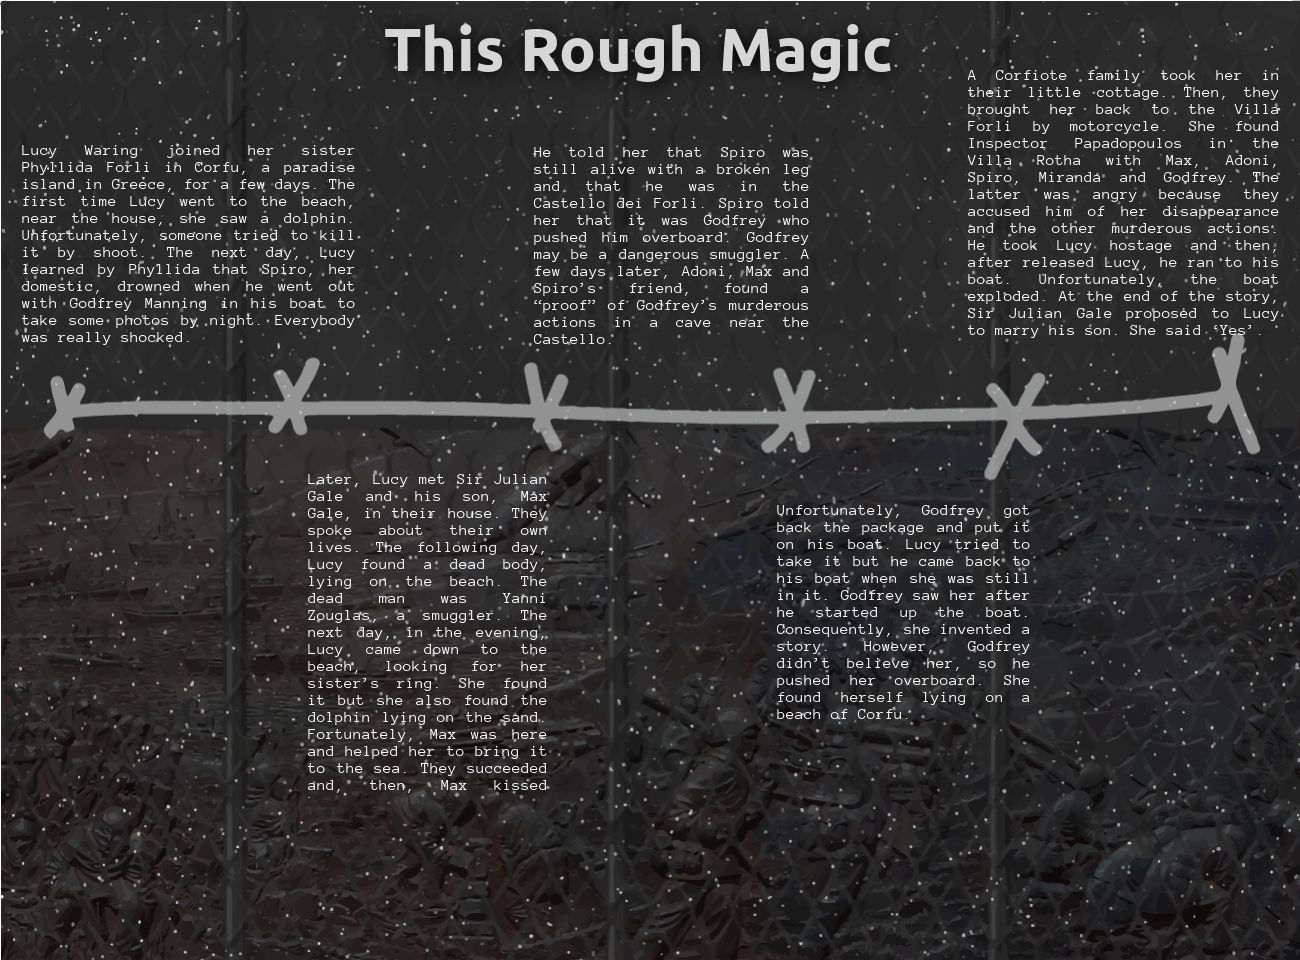 This Rough Magic: text, images, music, video | Glogster EDU